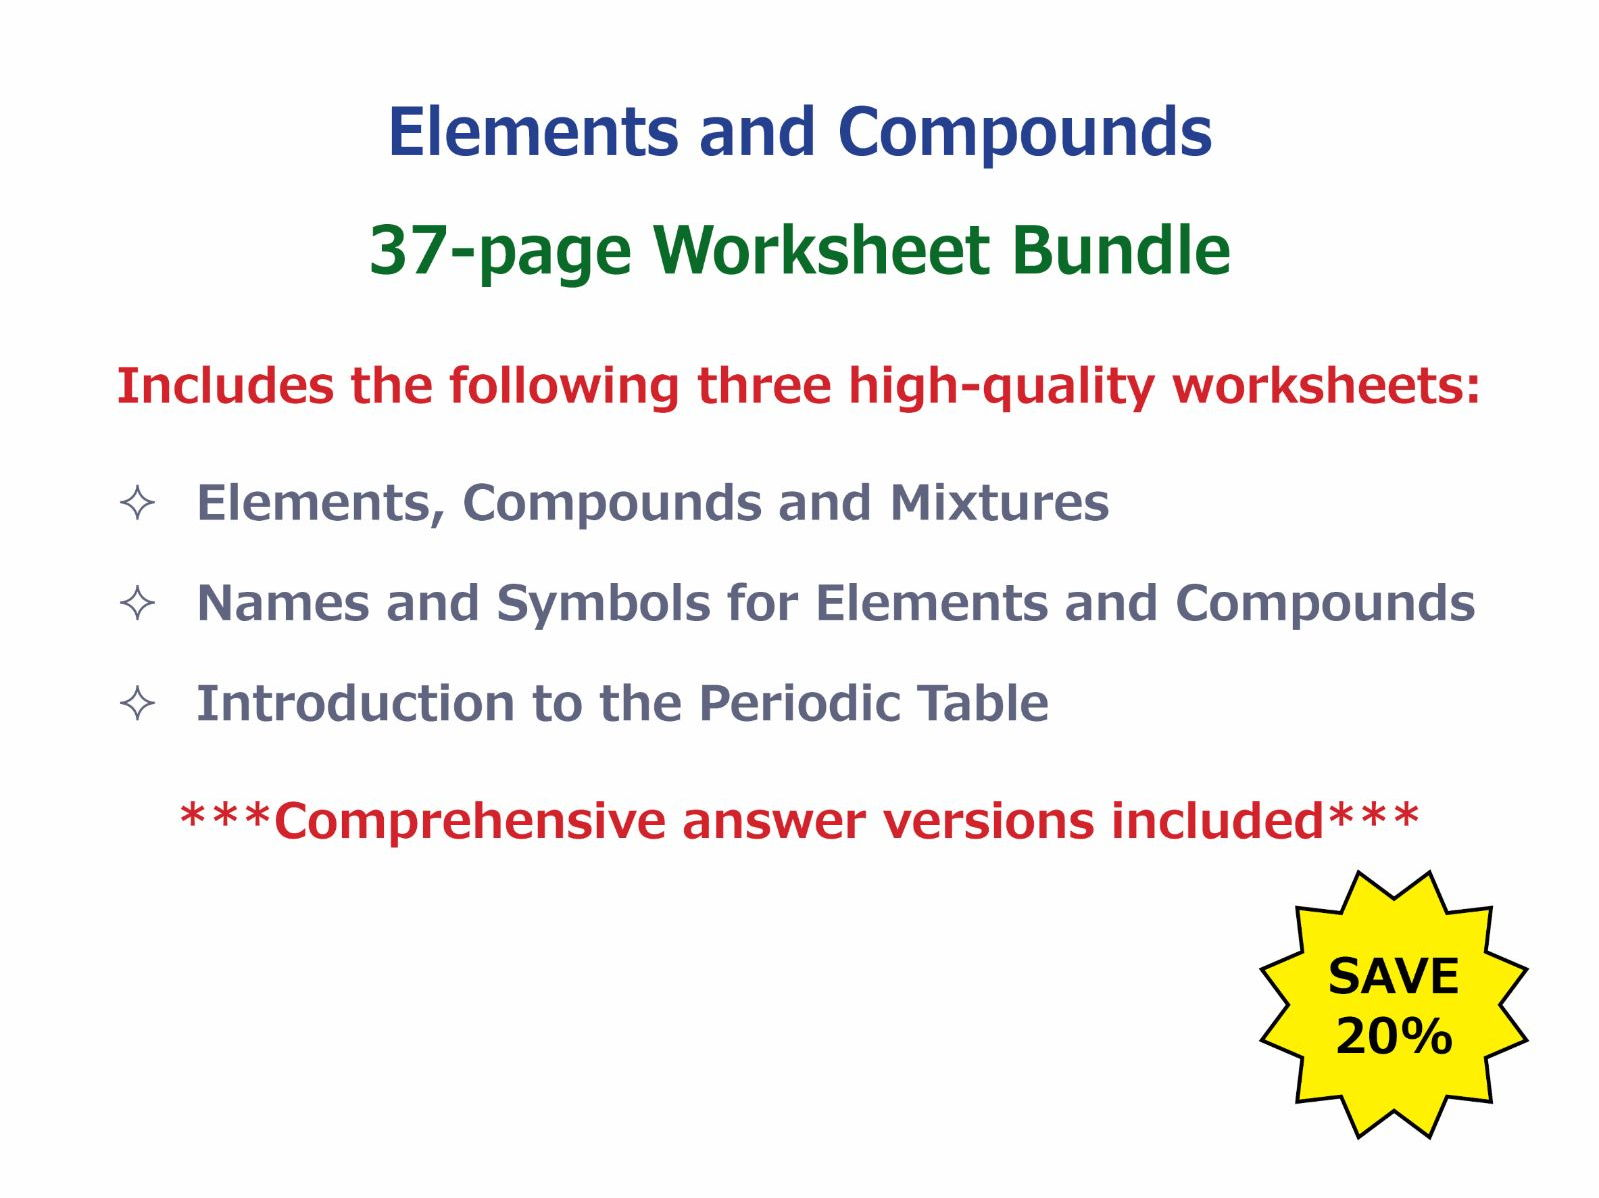 Elements and compounds worksheet bundle by goodscienceworksheets elements and compounds worksheet bundle by goodscienceworksheets teaching resources tes urtaz Choice Image